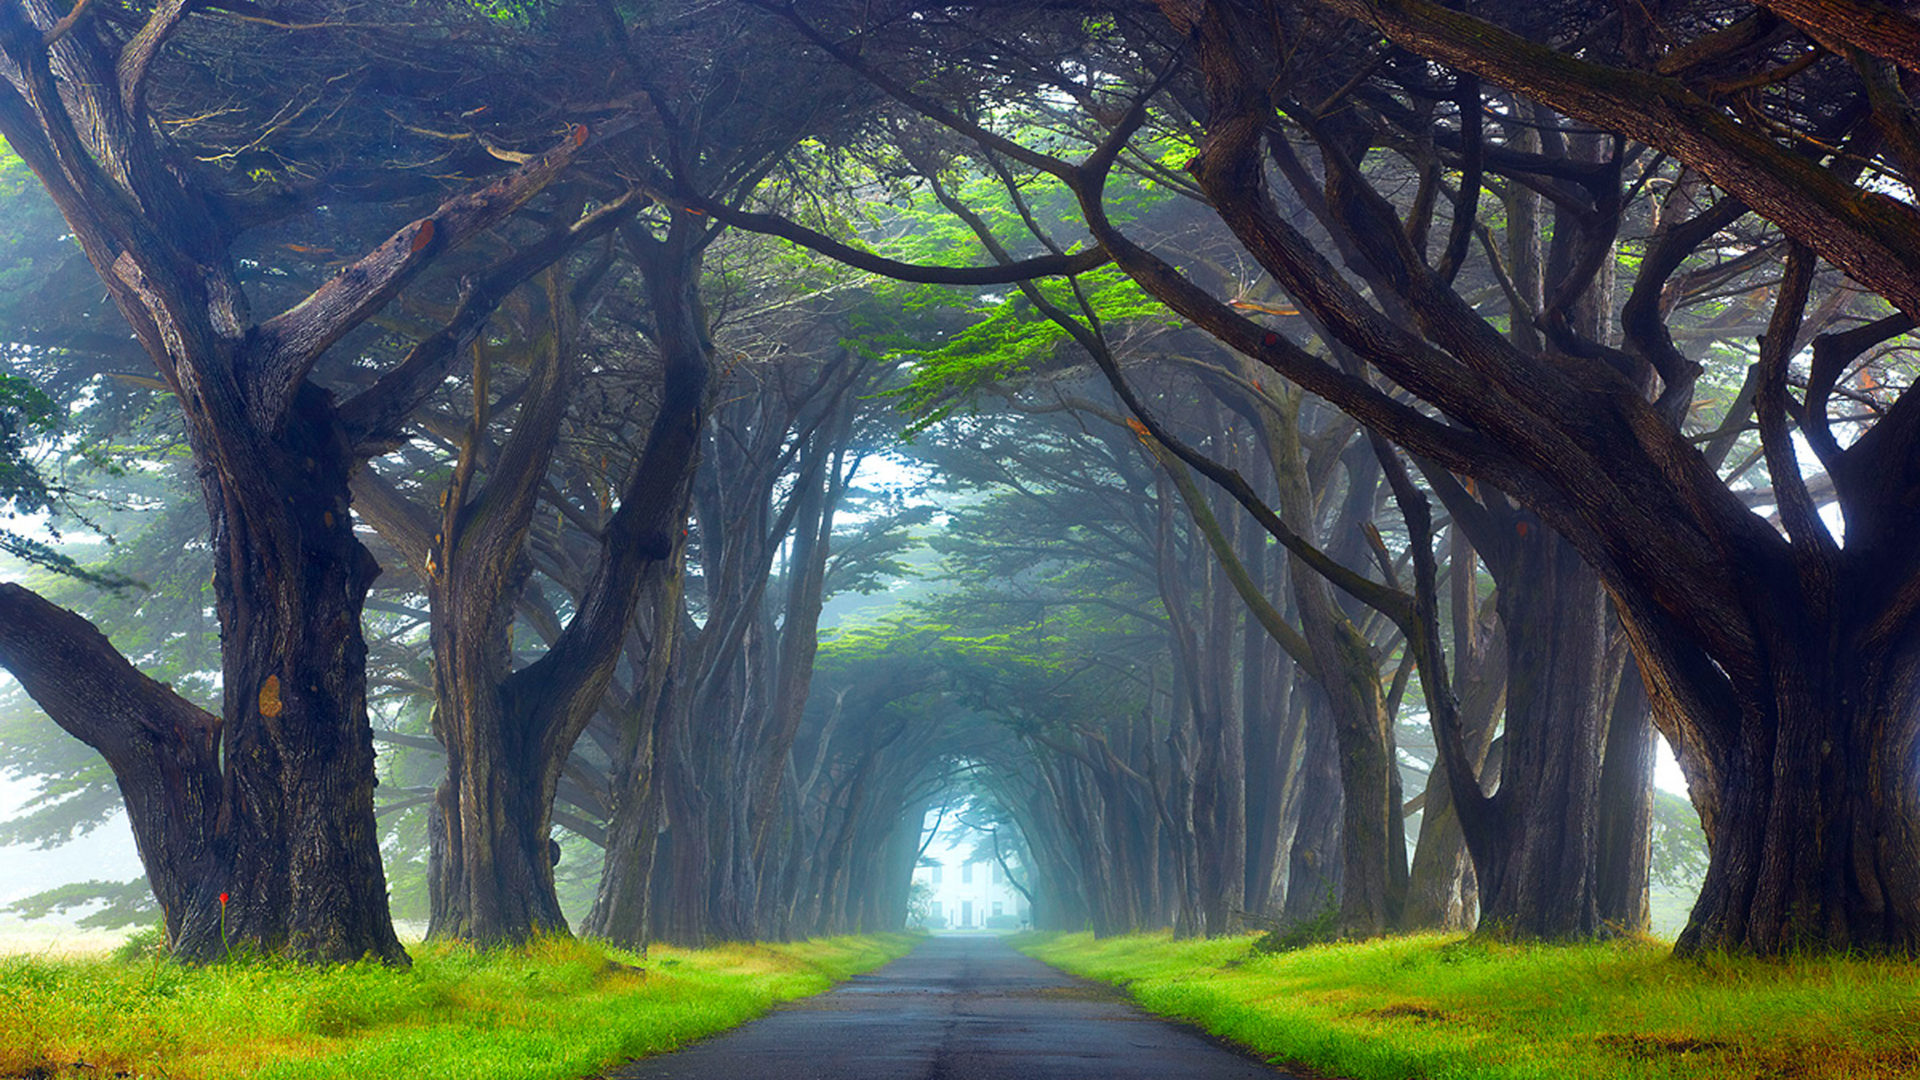 Fall Scene Wallpaper For Iphone Nature Tunnel Of Trees Way Point Reyes National Seashore